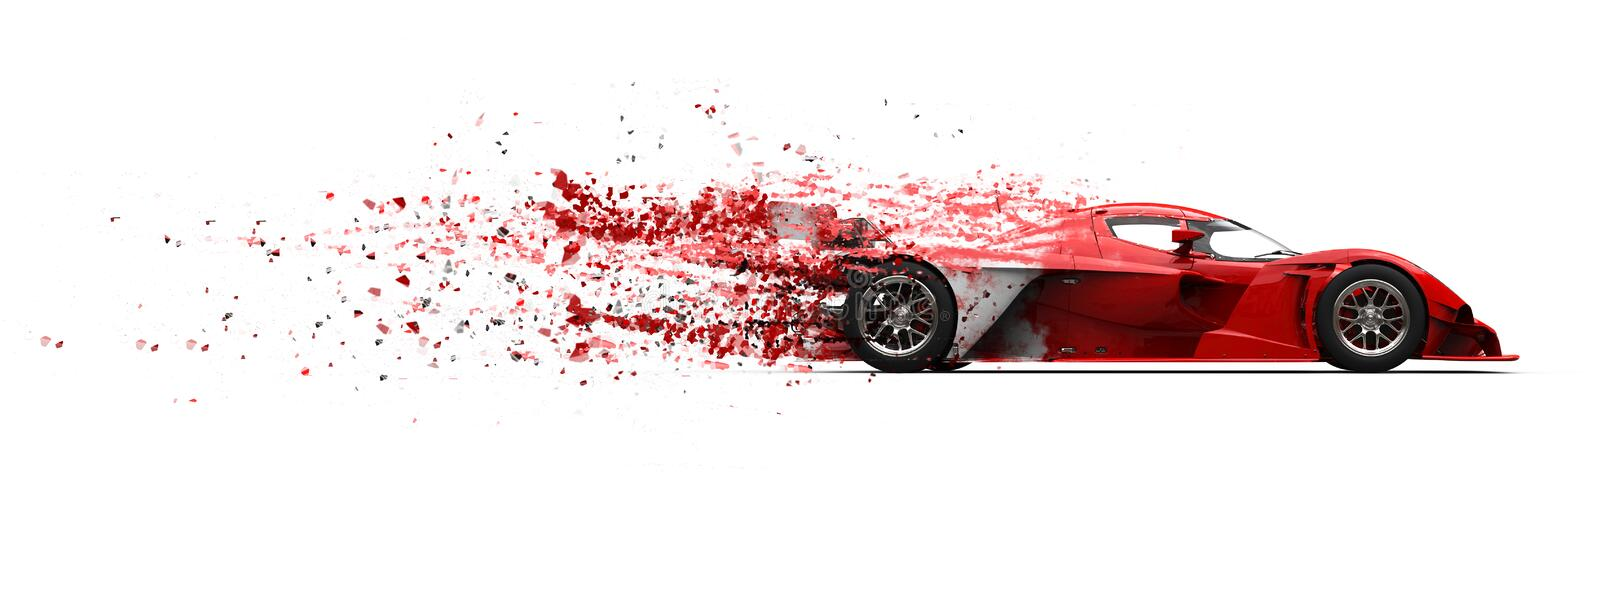 Super fast red sports car - paint disintegrating effect. Isolated on white background vector illustration